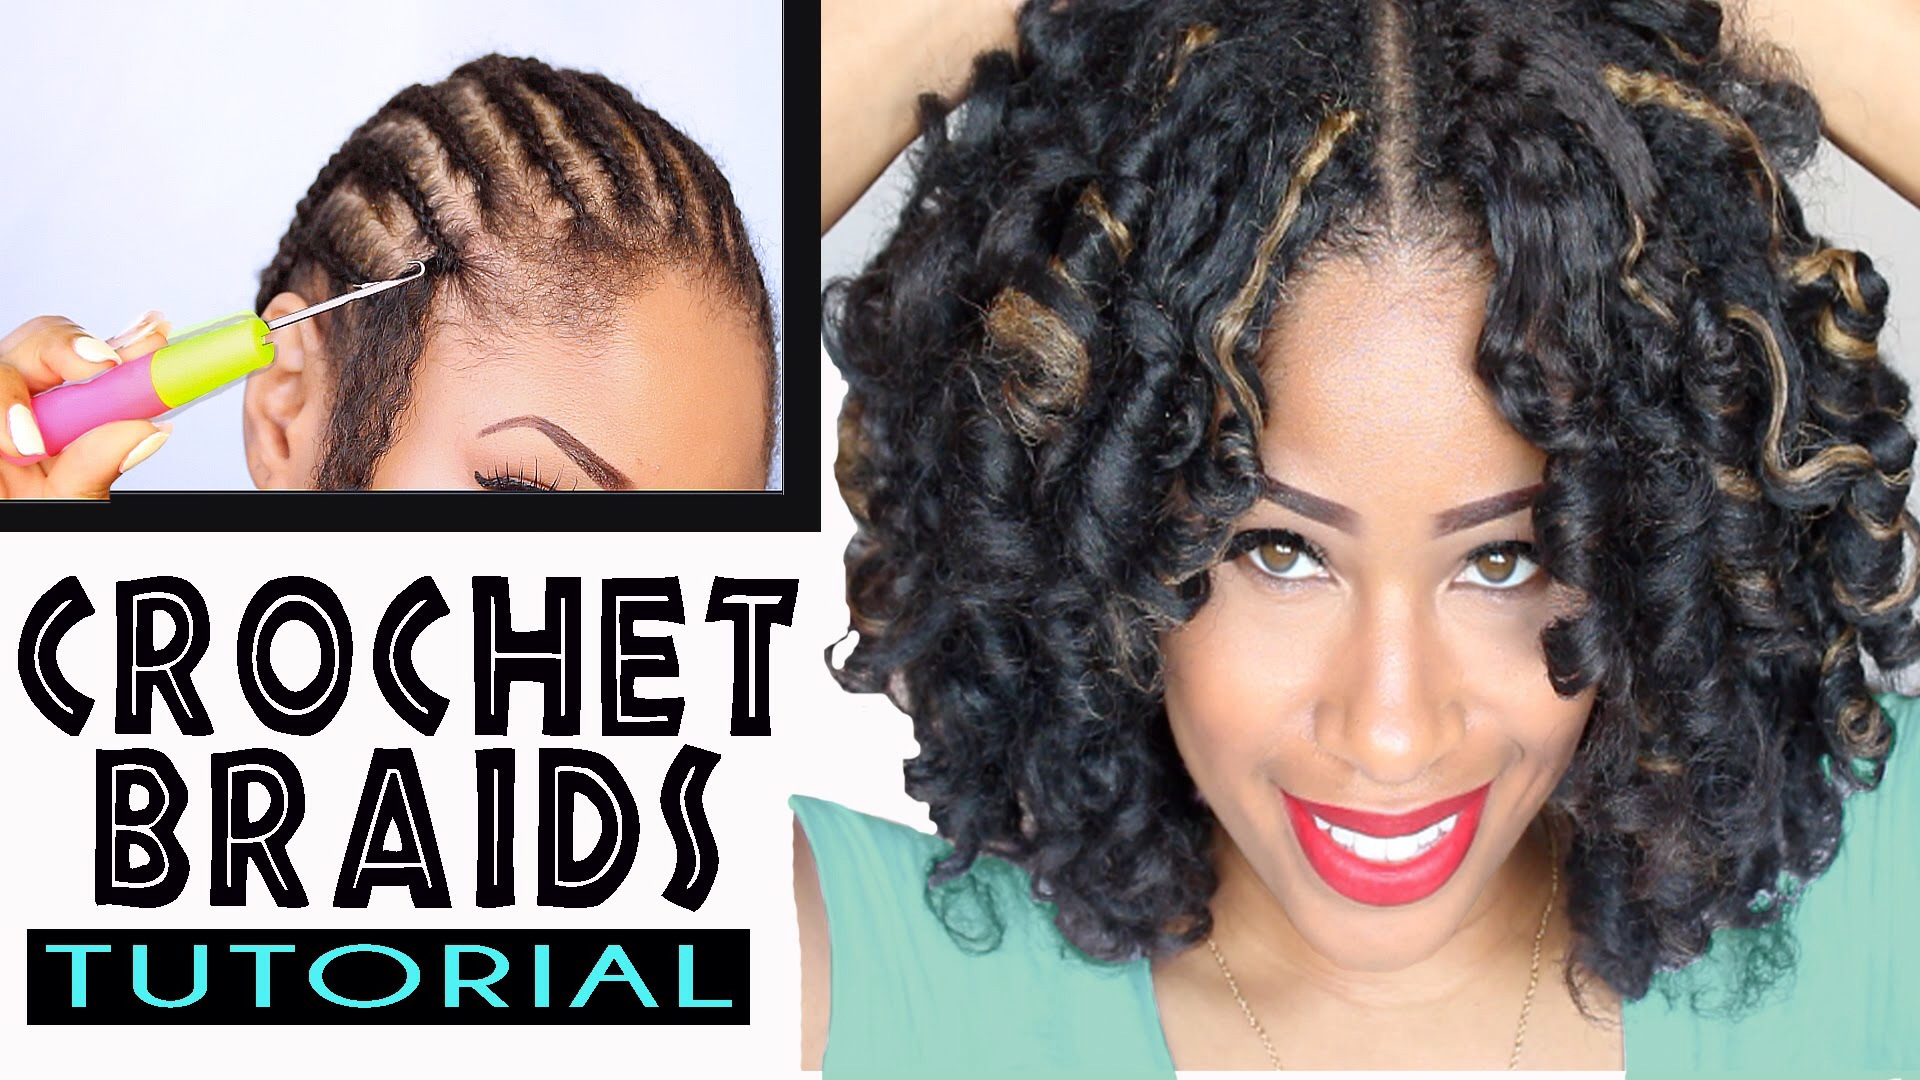 Crochet Hair You Can Wash : crotchet braids hair technique Viviannesblog